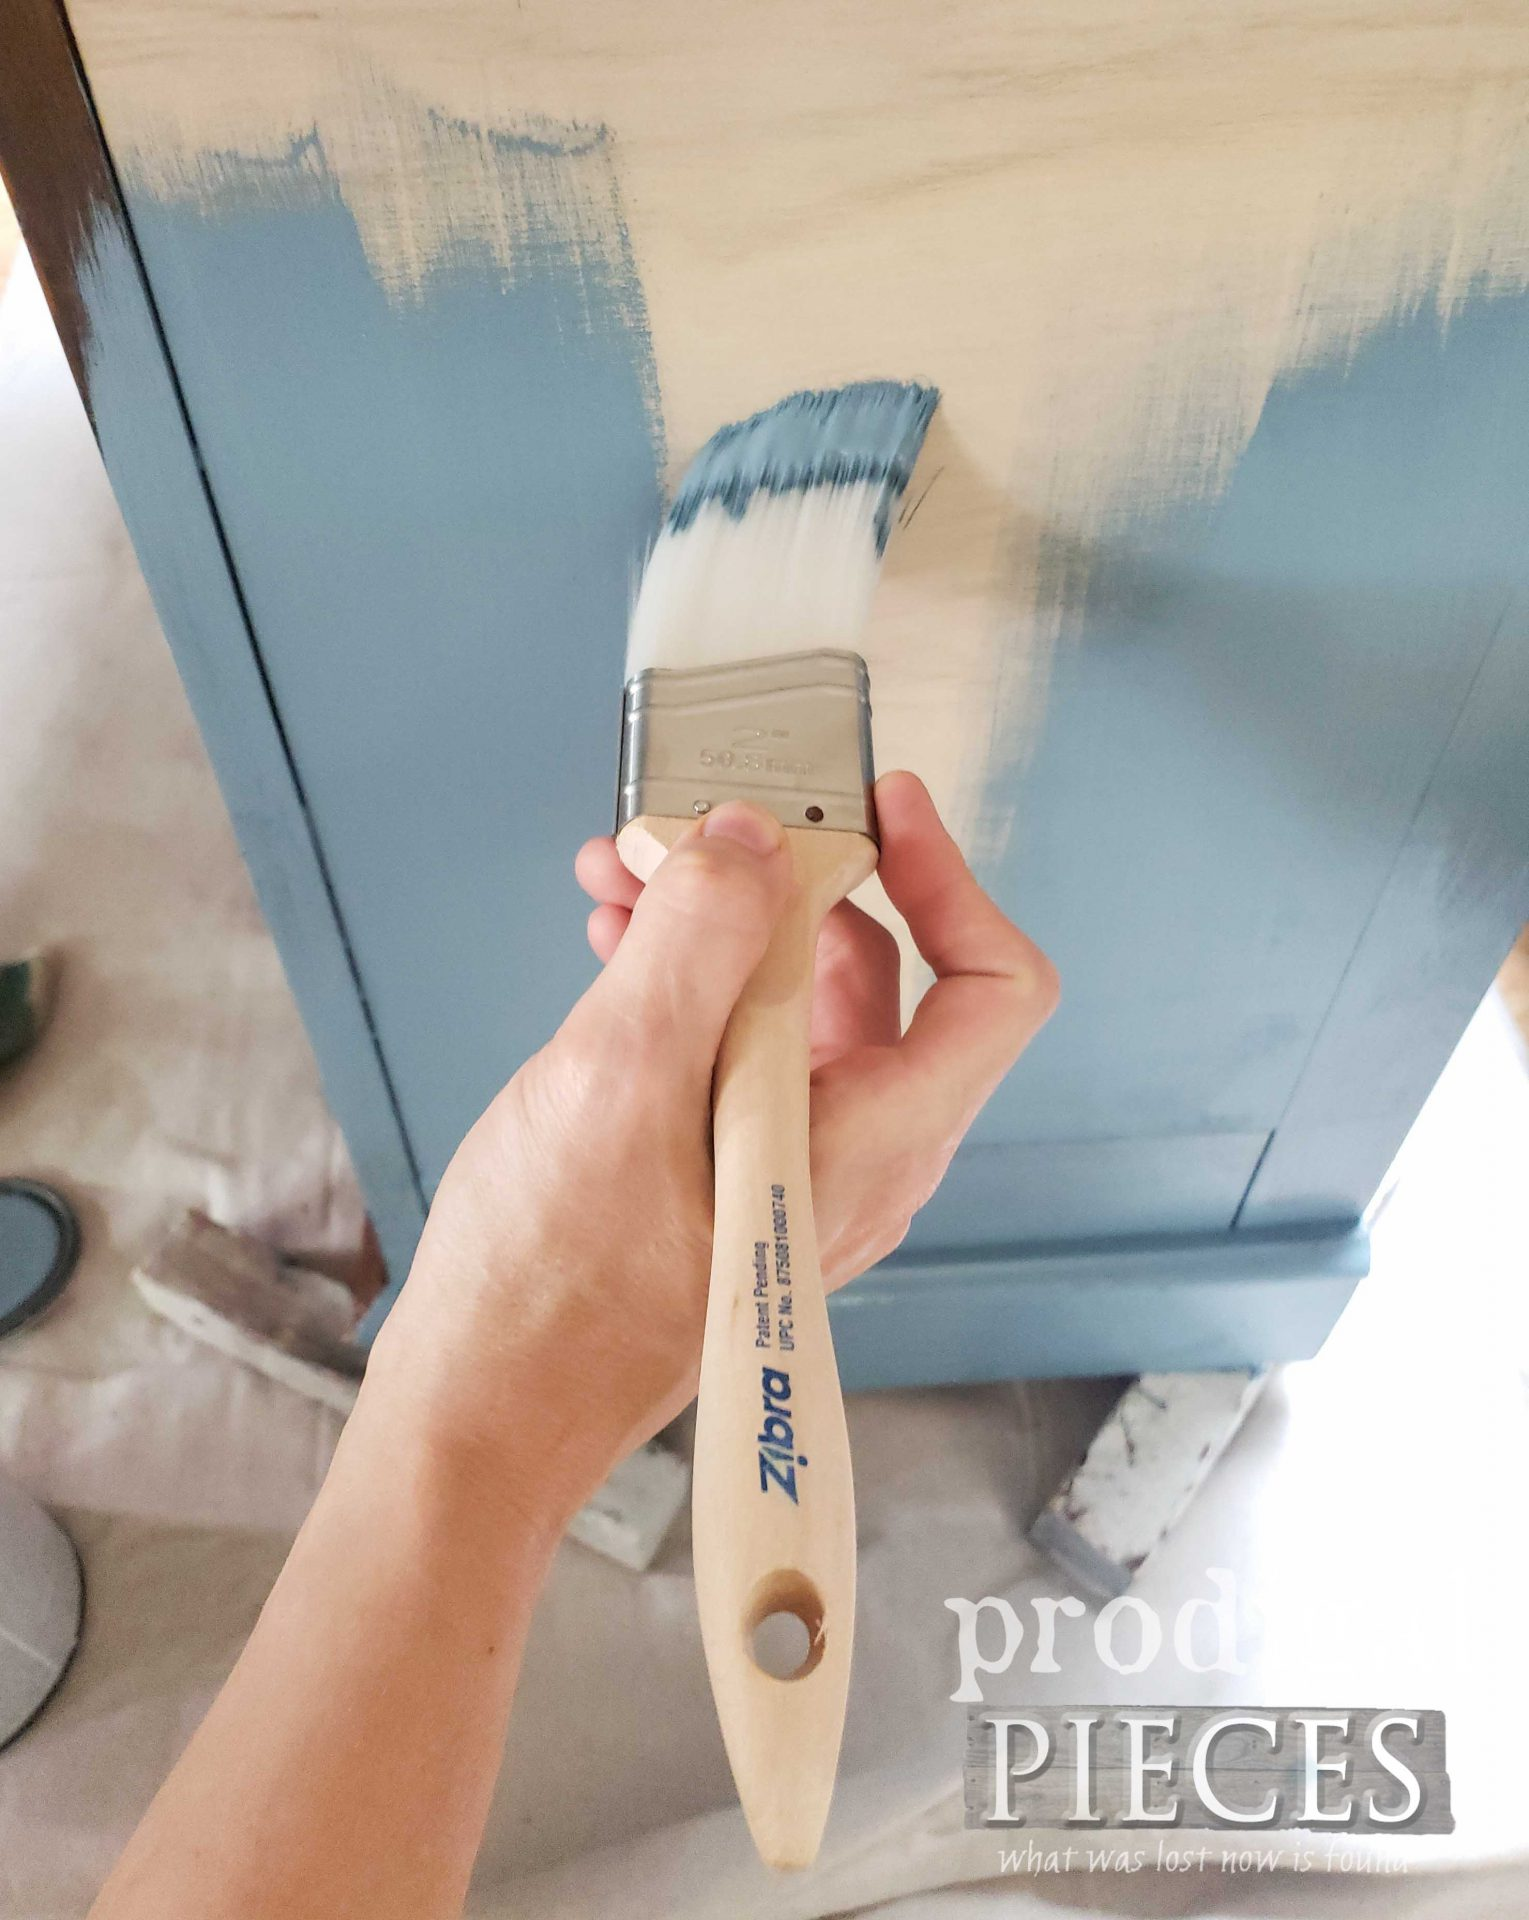 Painting Curio Cabinet Repurposed into Cupboard with Zibra Paint Brush | prodigalpieces.com #prodigalpieces